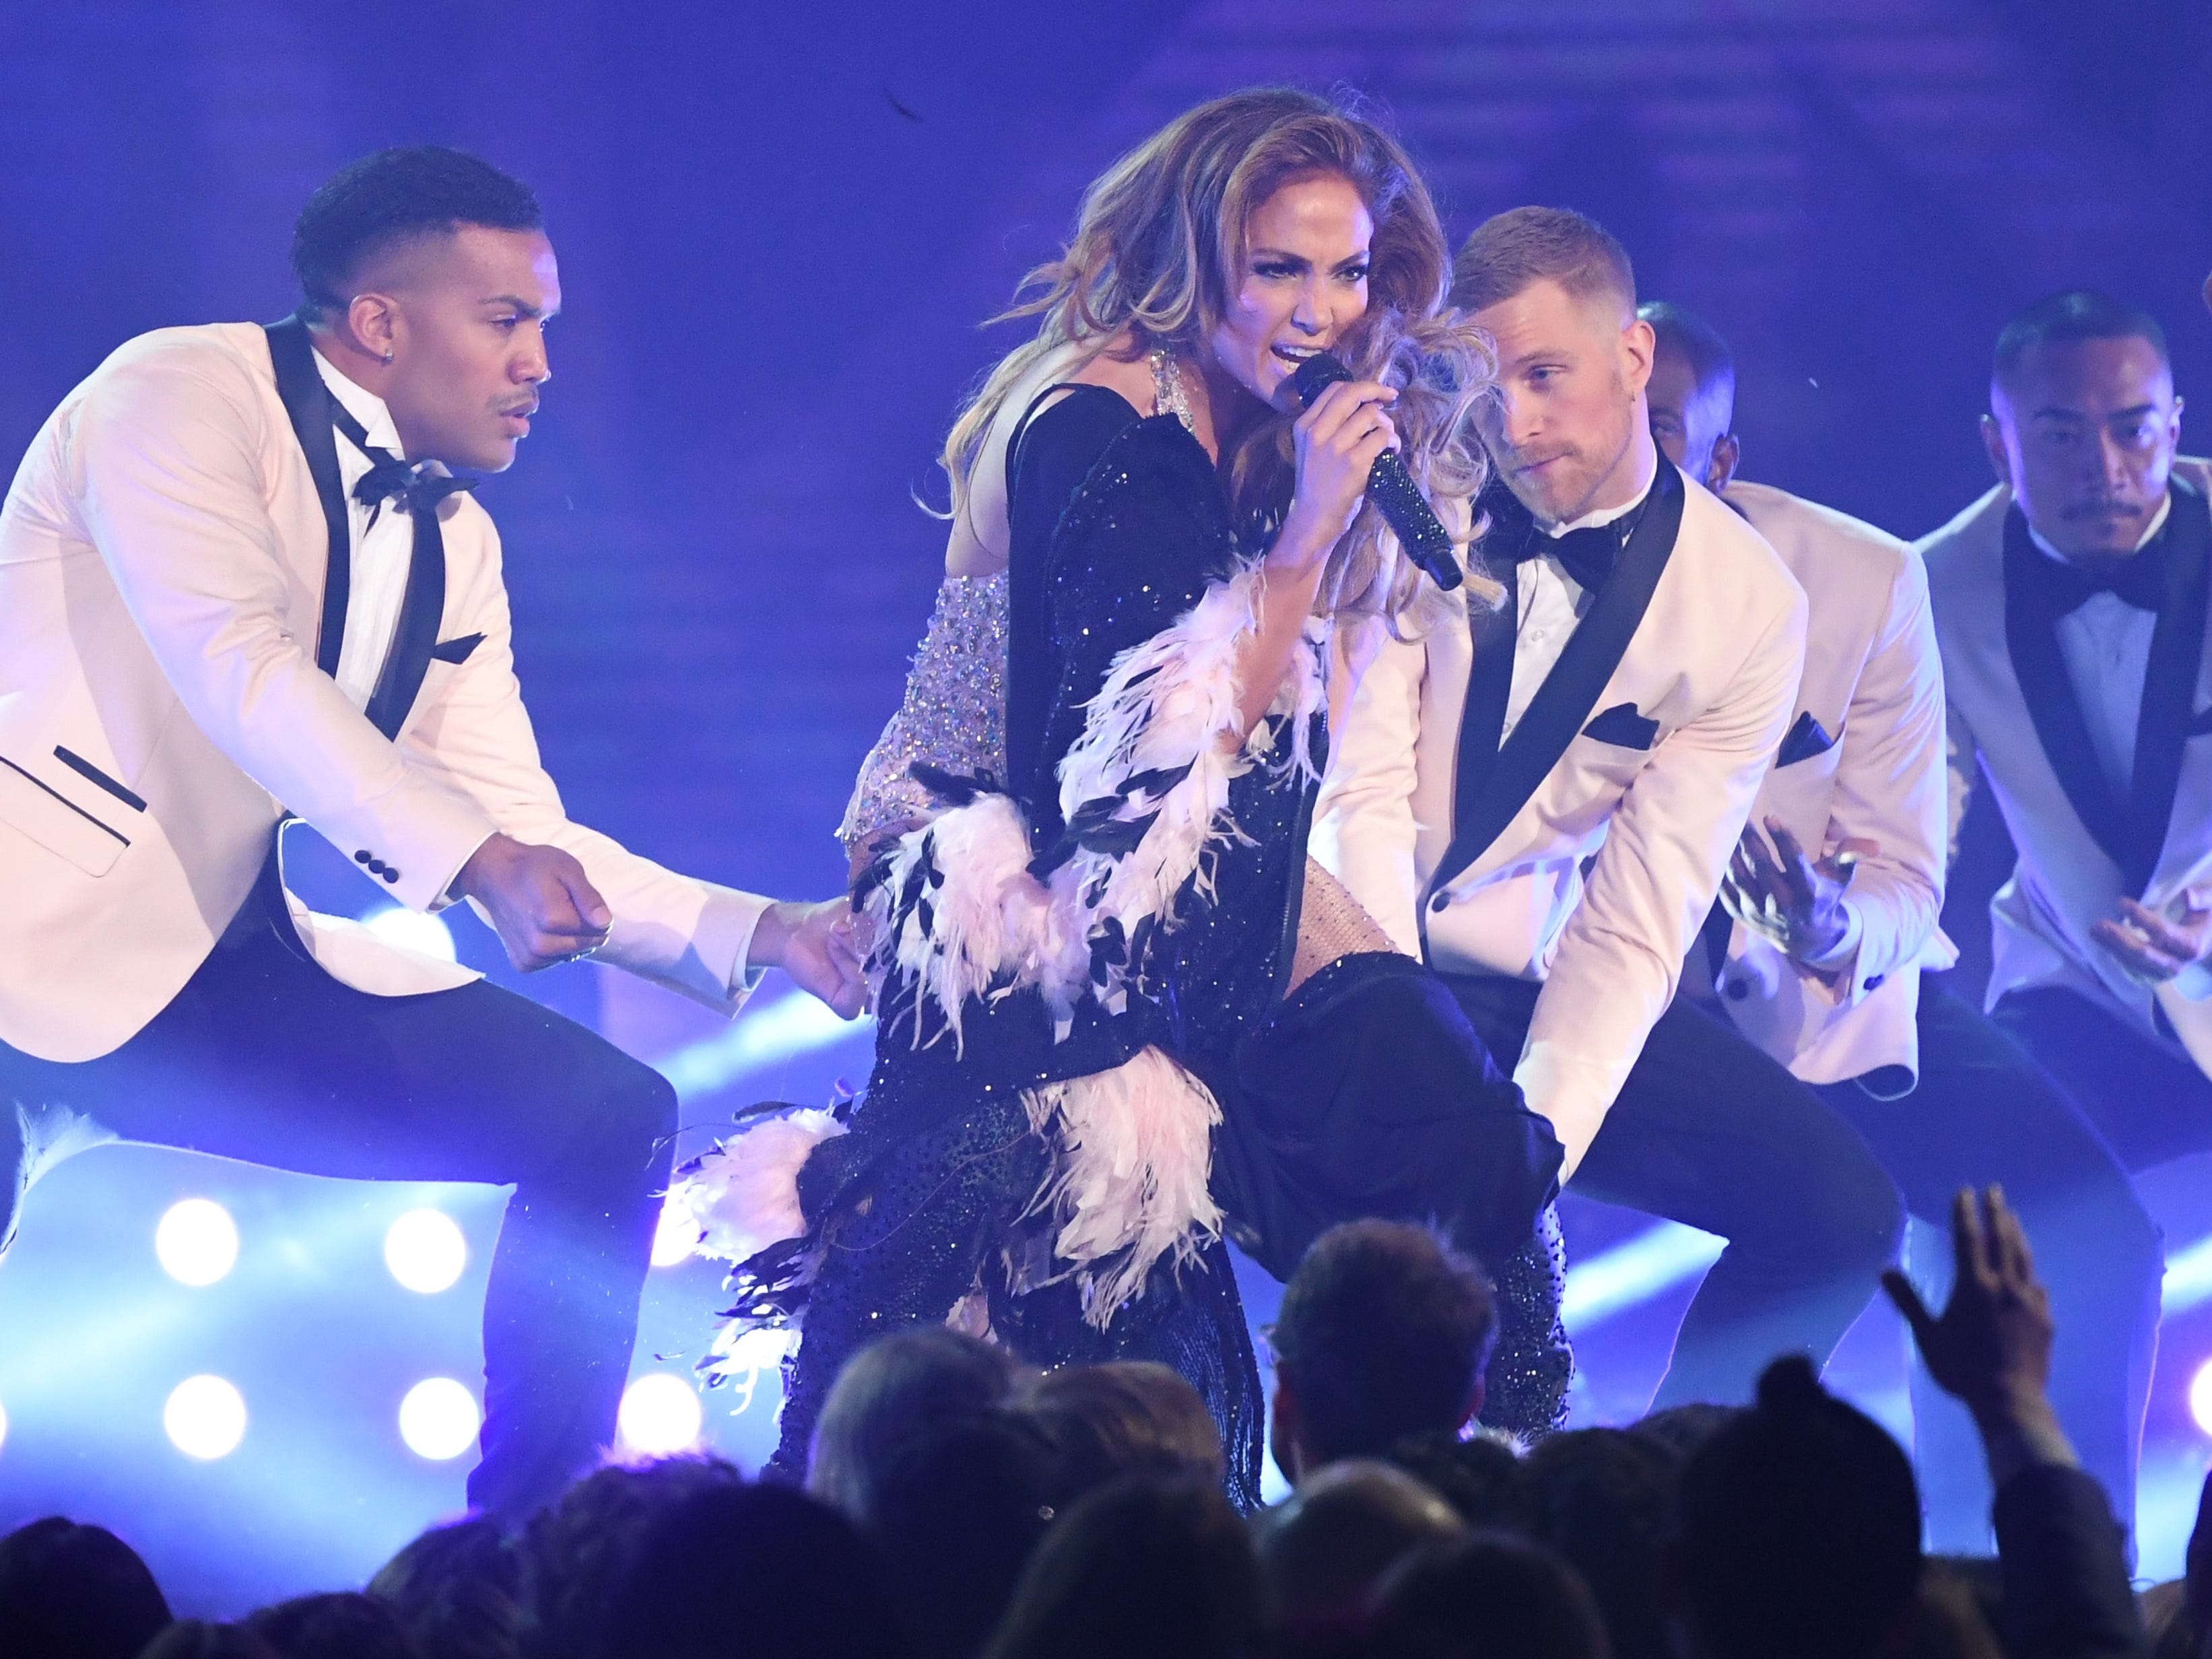 Jennifer Lopez performs during the Motown tribute segment.